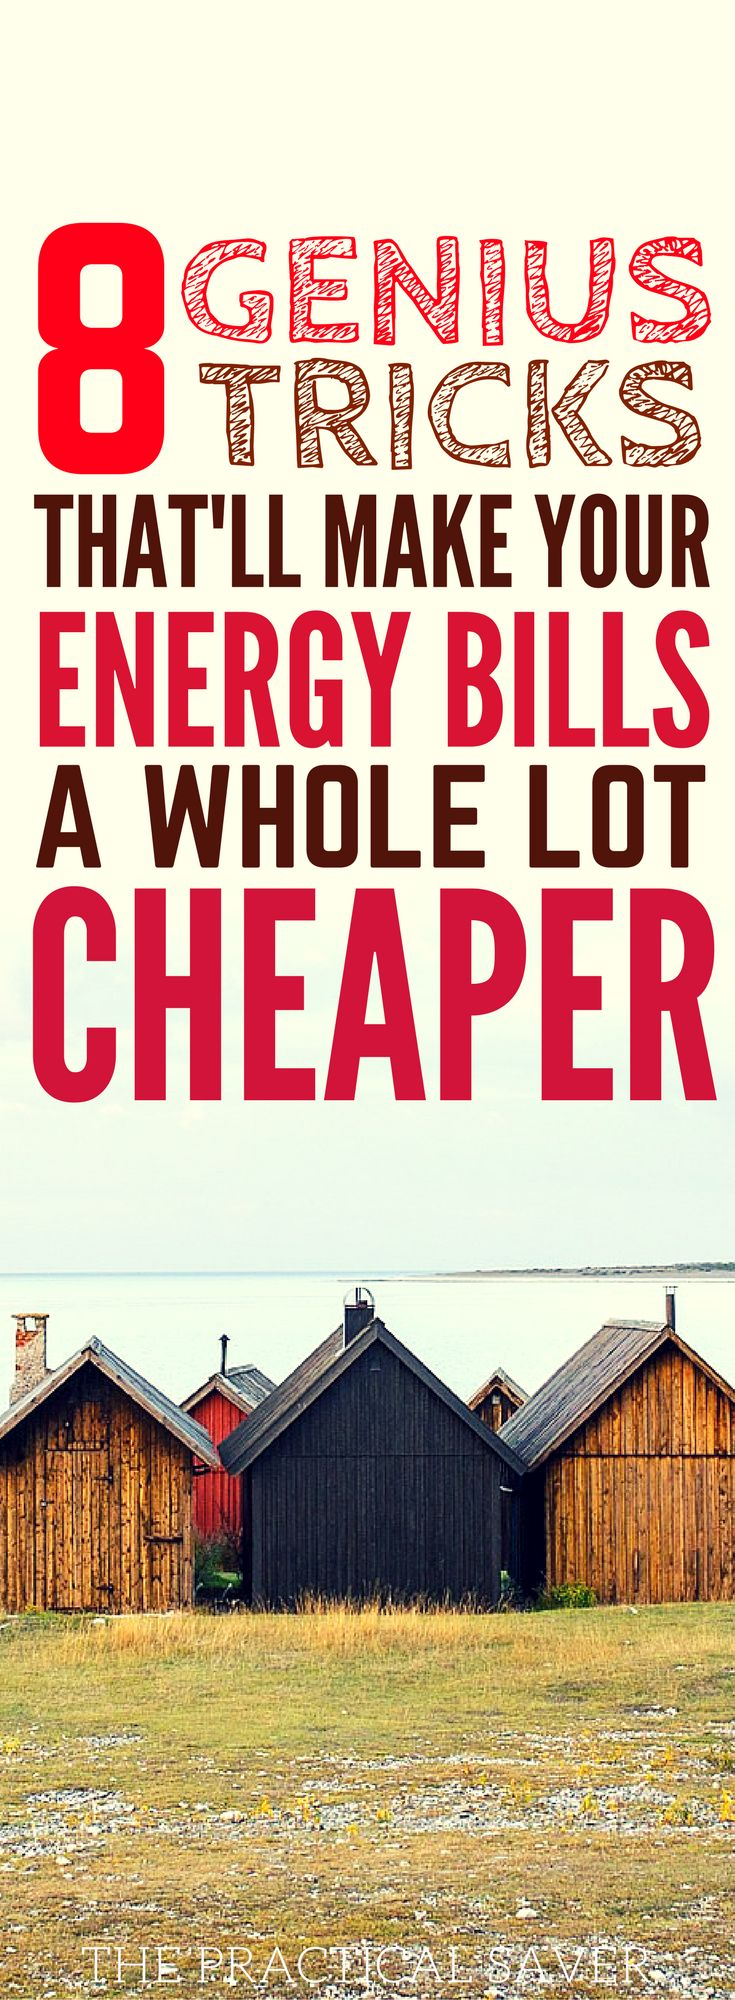 These 8 best ways to reduce energy bill is the best ever. I know now that I will be saving money on energy bill. If you are looking ways to cut electric bills or find electric bill savings, this post is for you. Frugal living tips and saving money tips at their best. Definitely pinning!